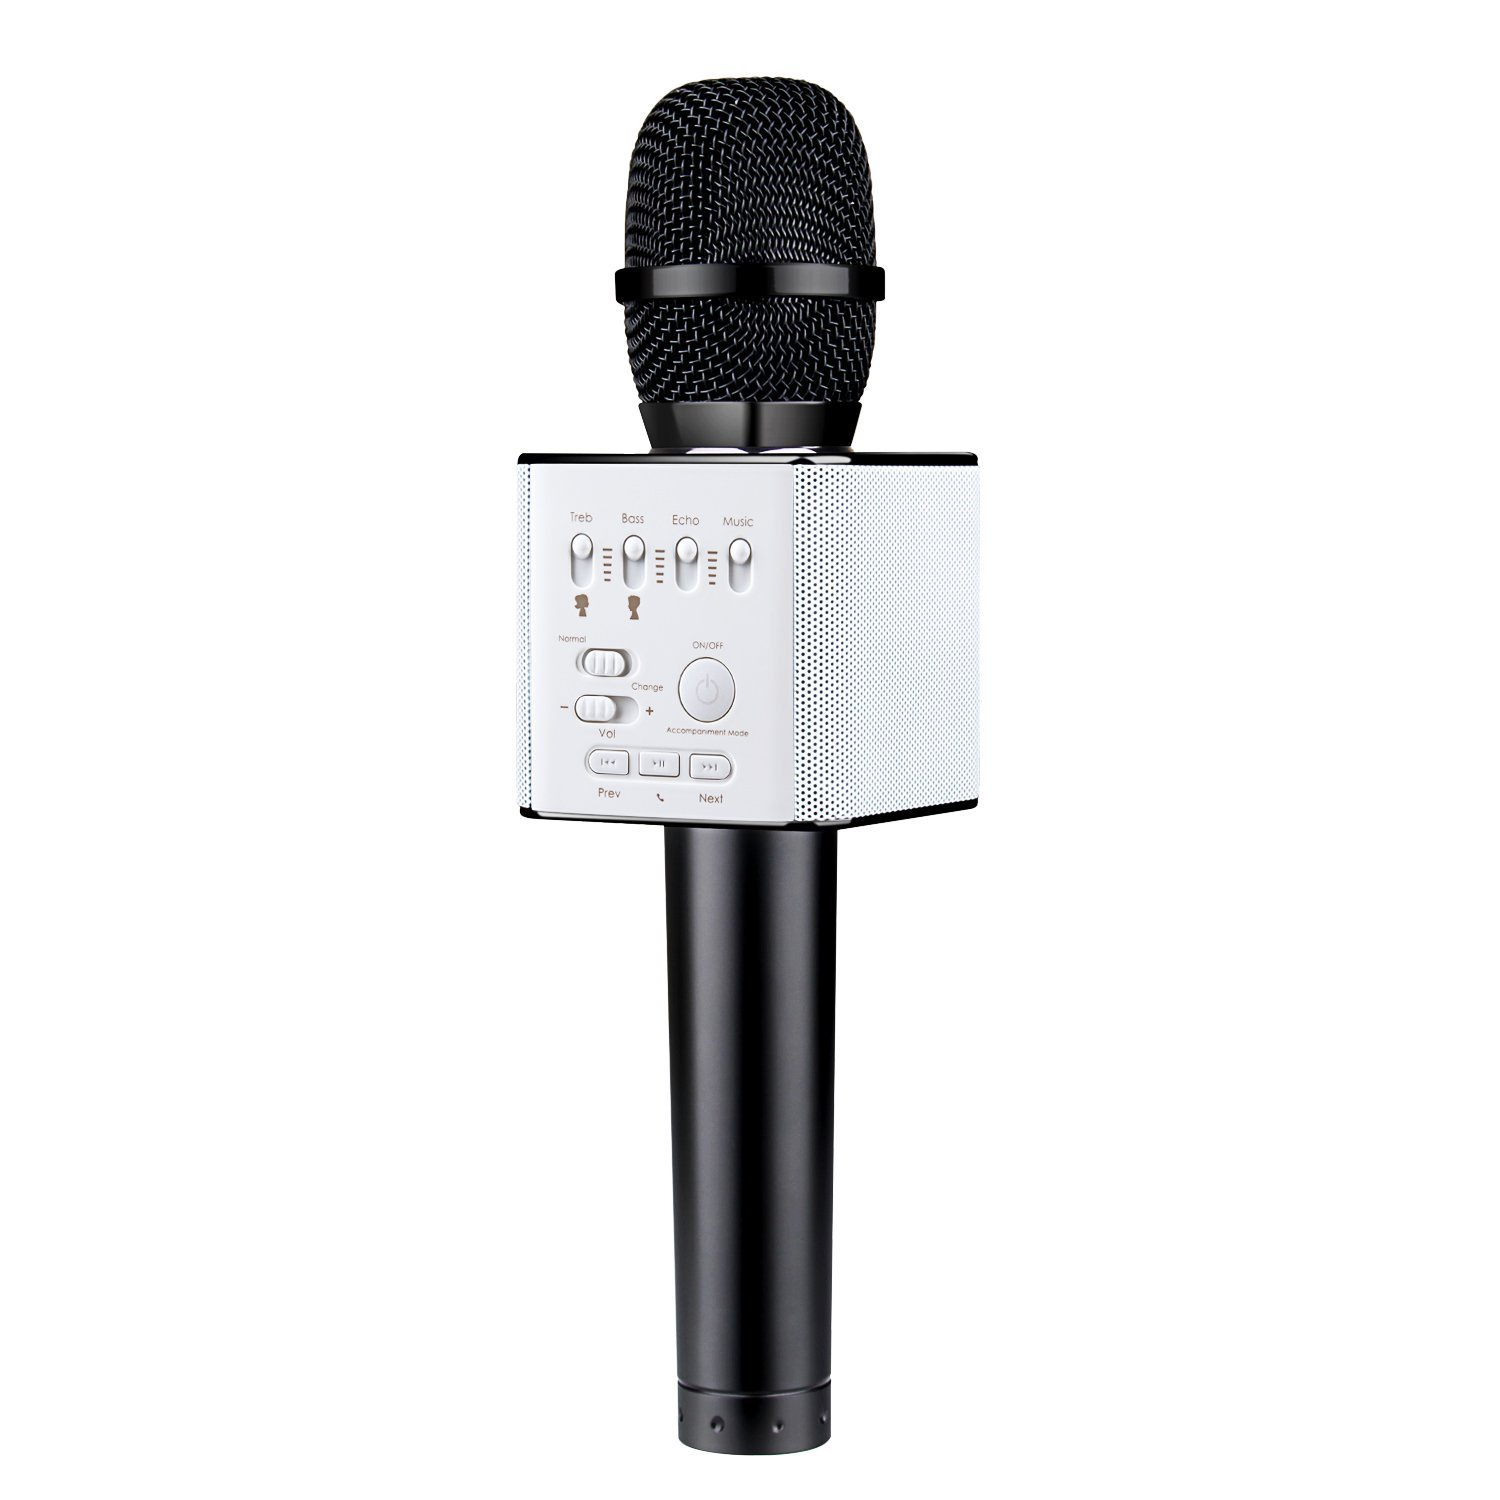 Mugig Bluetooth Karaoke Microphone, Wireless Bluetooth Music Player Multifunctional Microphone for Singing, One Key for Voice Changing, U Disk Music Playing